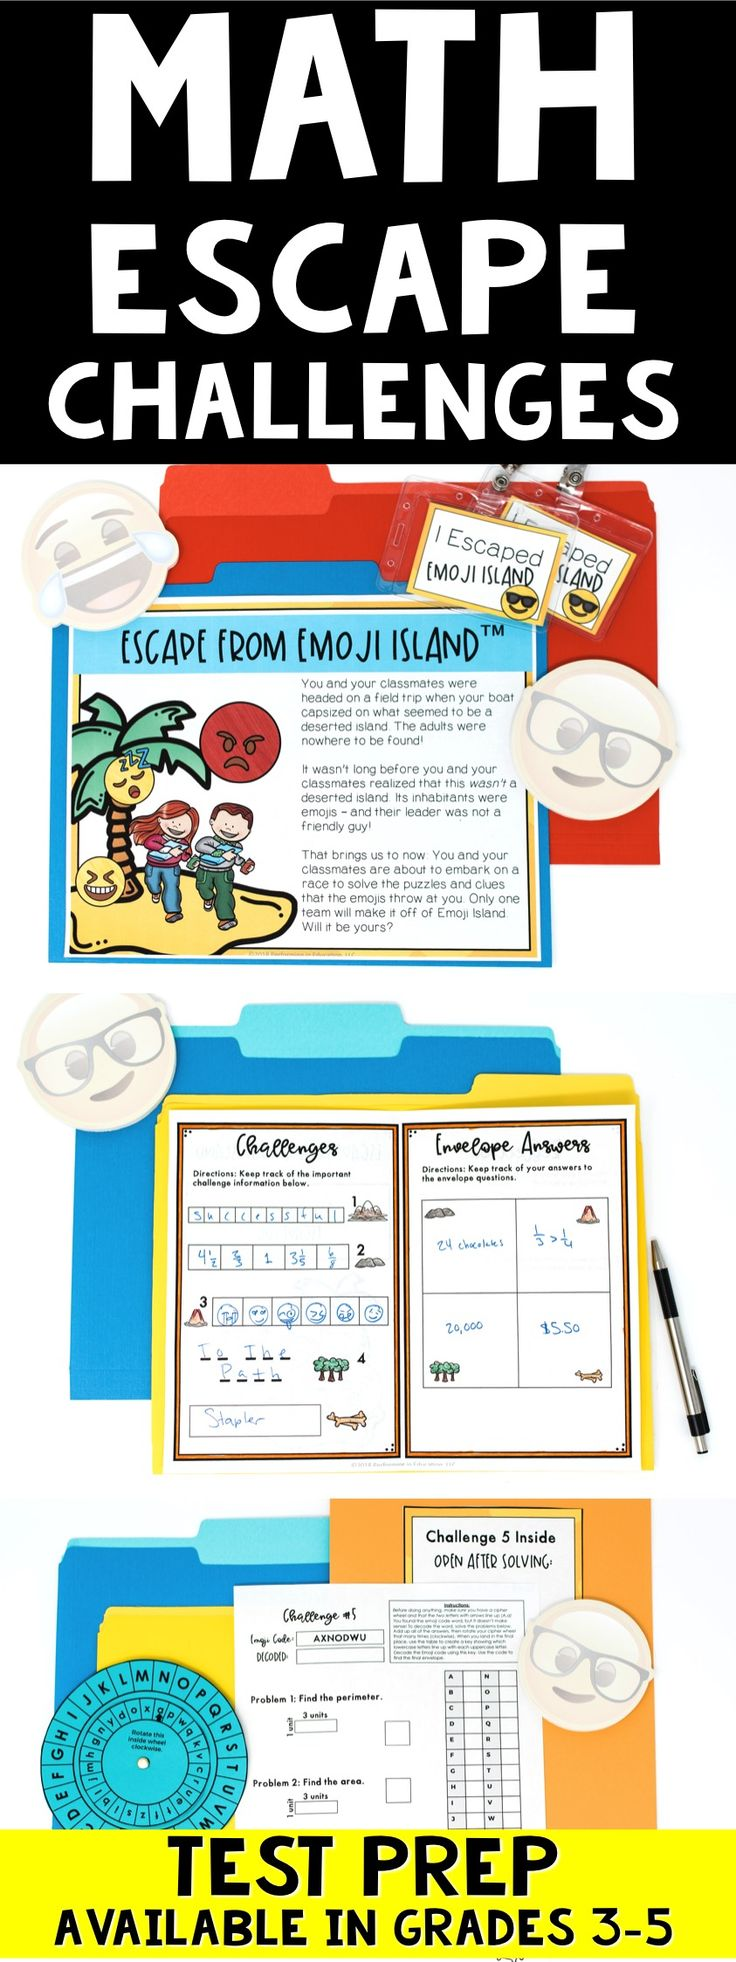 Math Escape Challenges are so awesome for test prep! Banish boring test prep and help your students practice multiplication, division, addition, subtraction, fractions, geometry, and more with this escape classroom for 3rd, 4th, or 5th grade math.